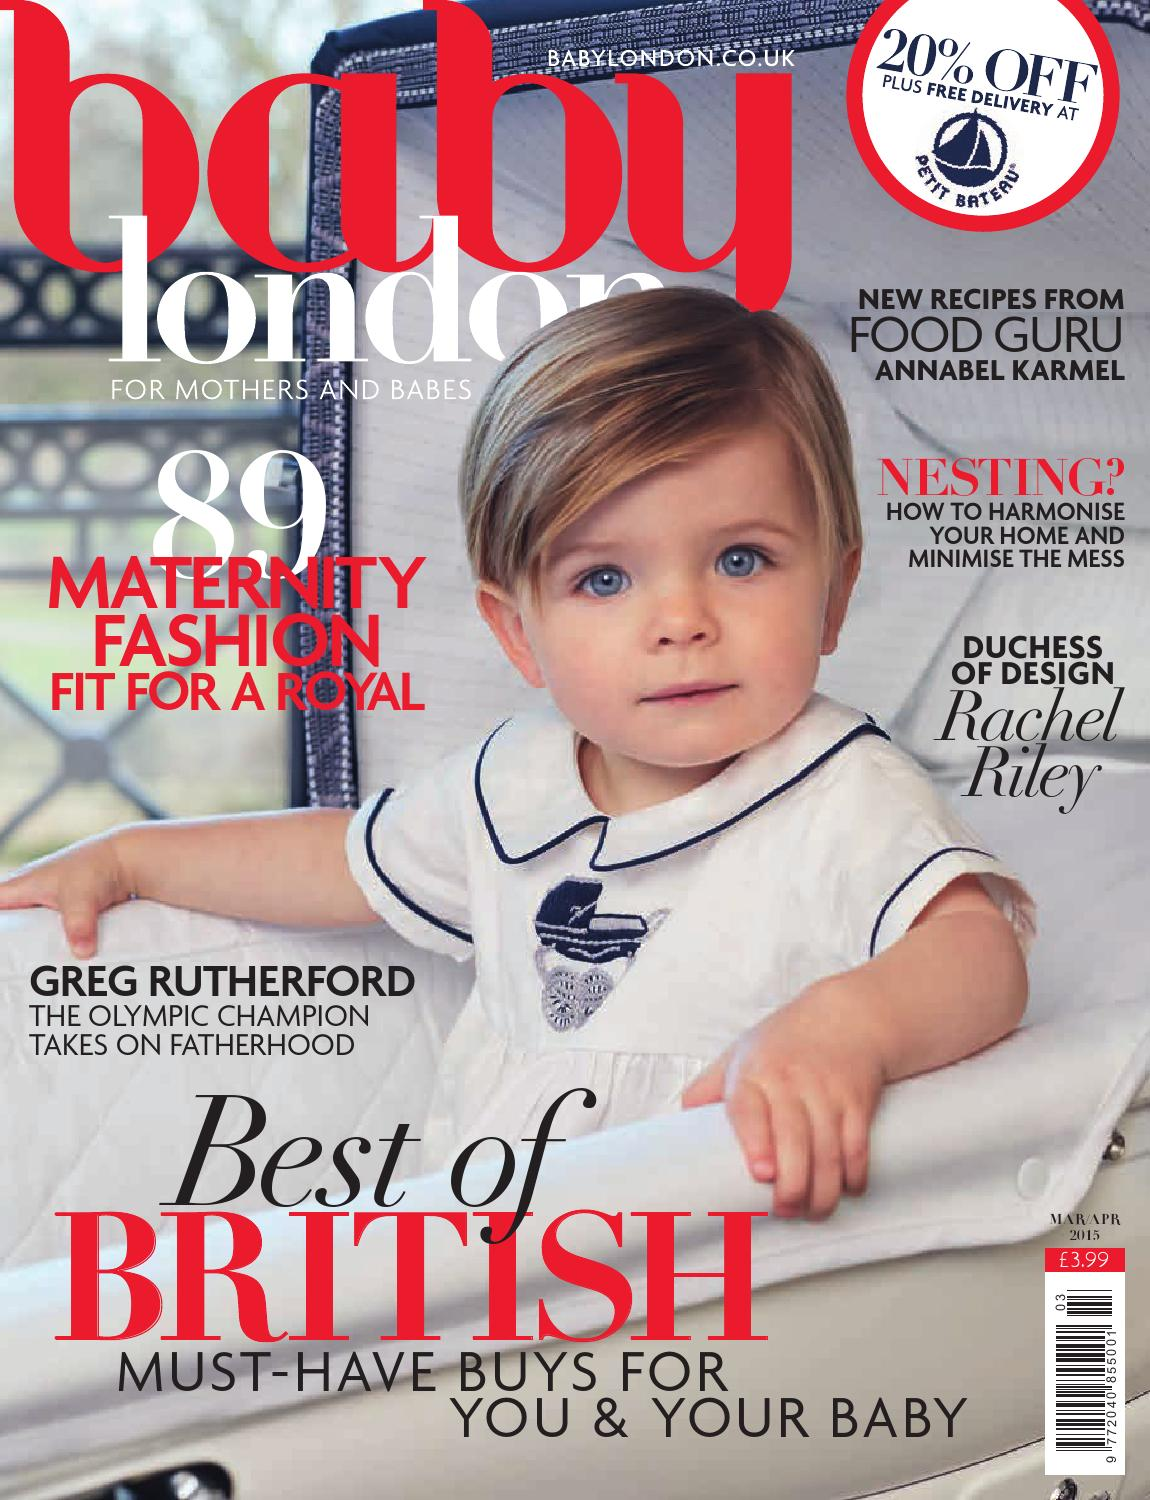 a39a7c803 Baby London March/April 2015 by The Chelsea Magazine Company - issuu